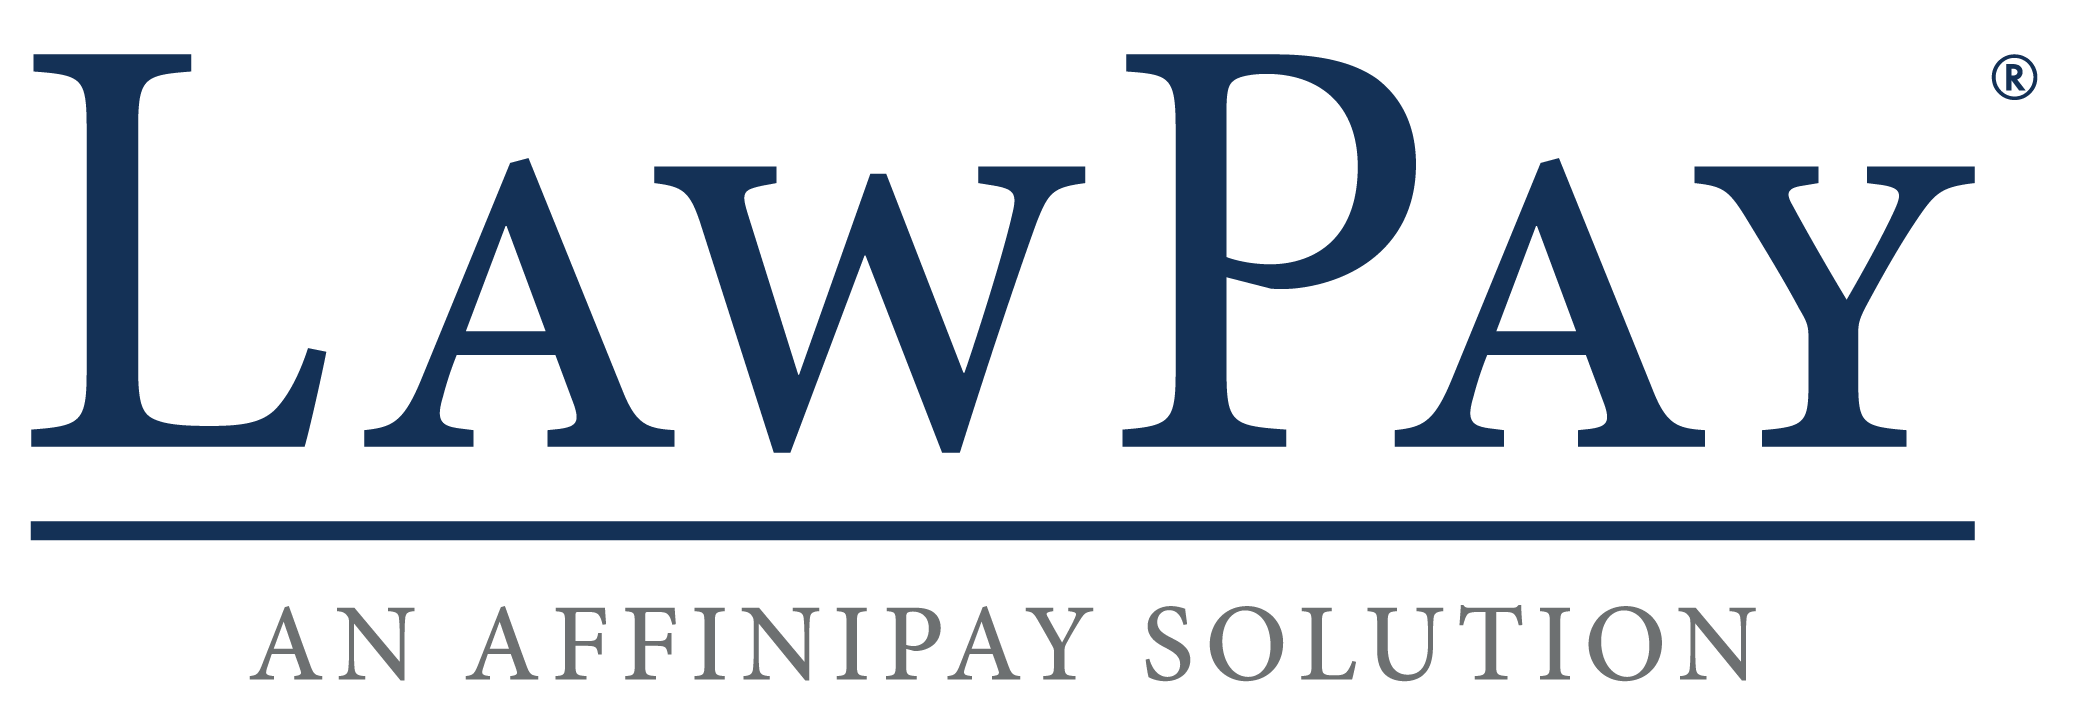 LawPay - An Affinipay Solution